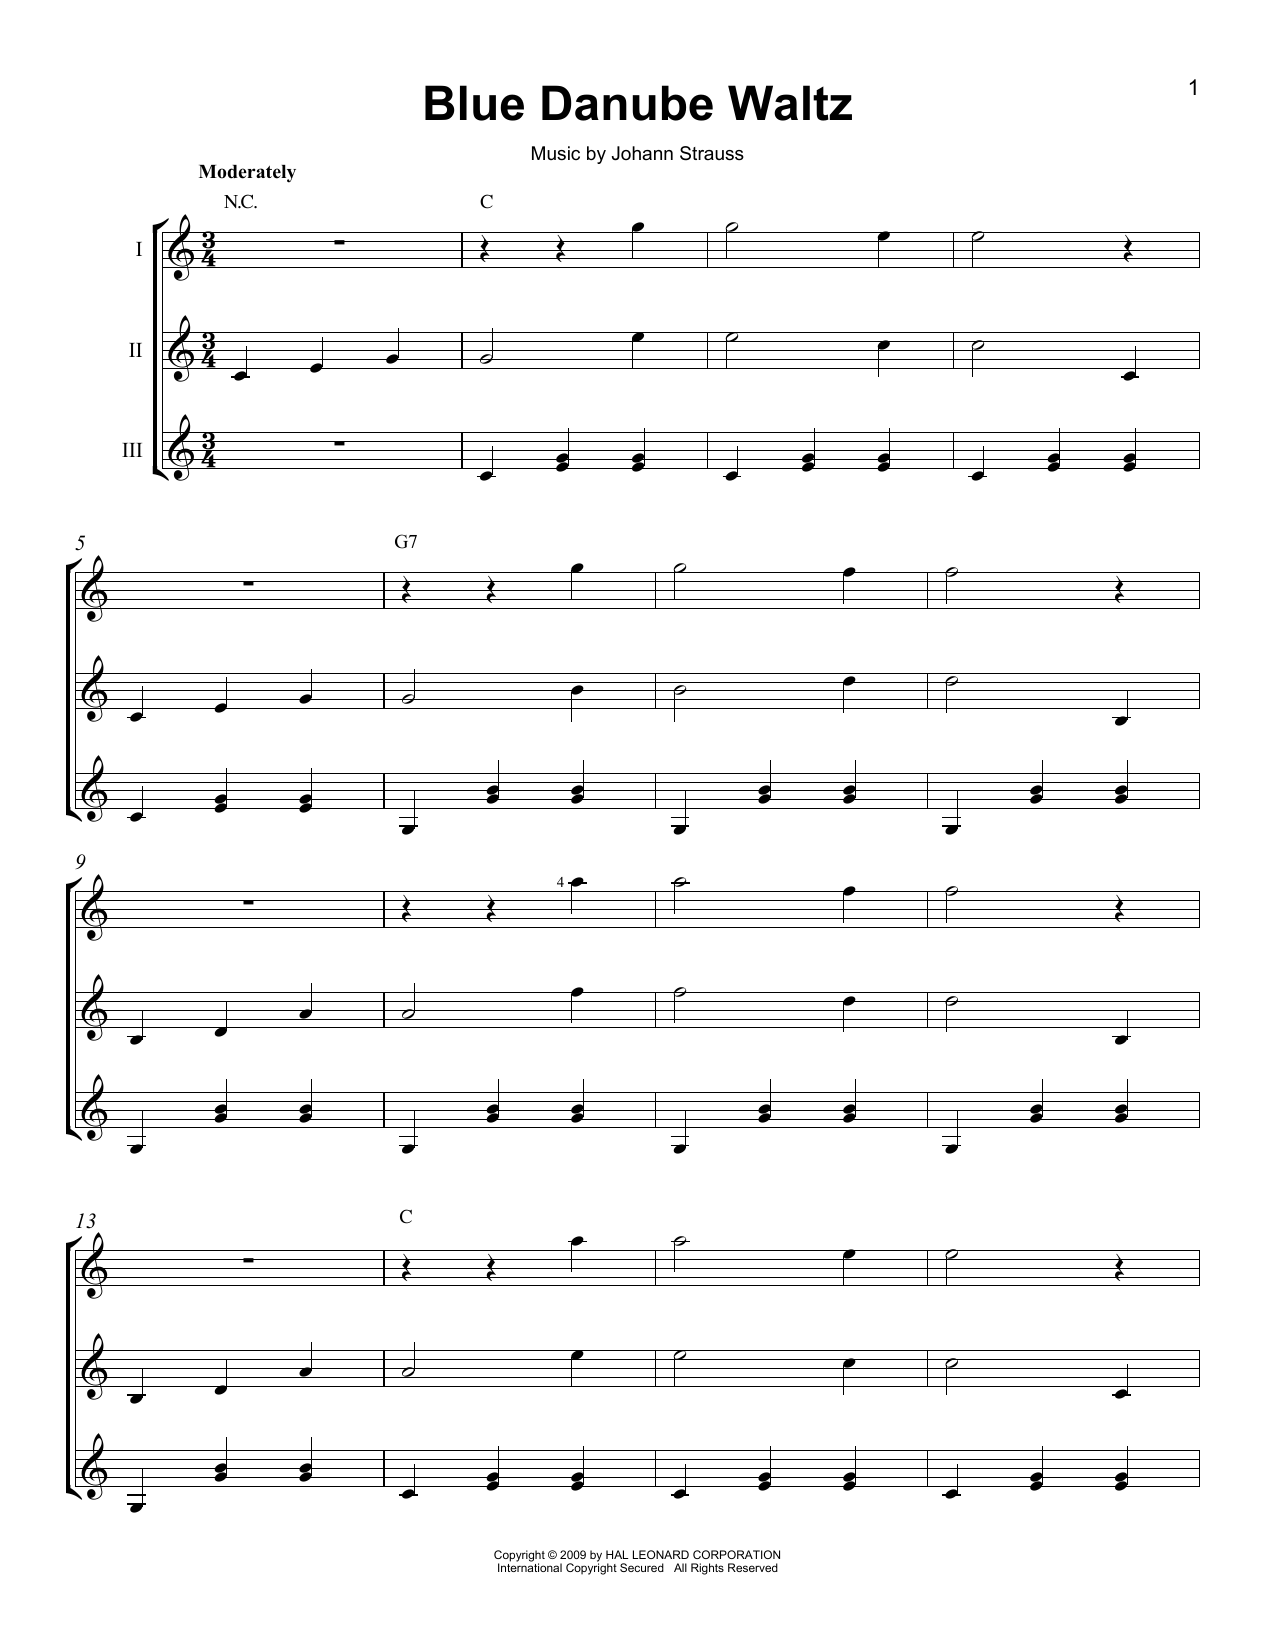 Blue Danube Waltz Sheet Music